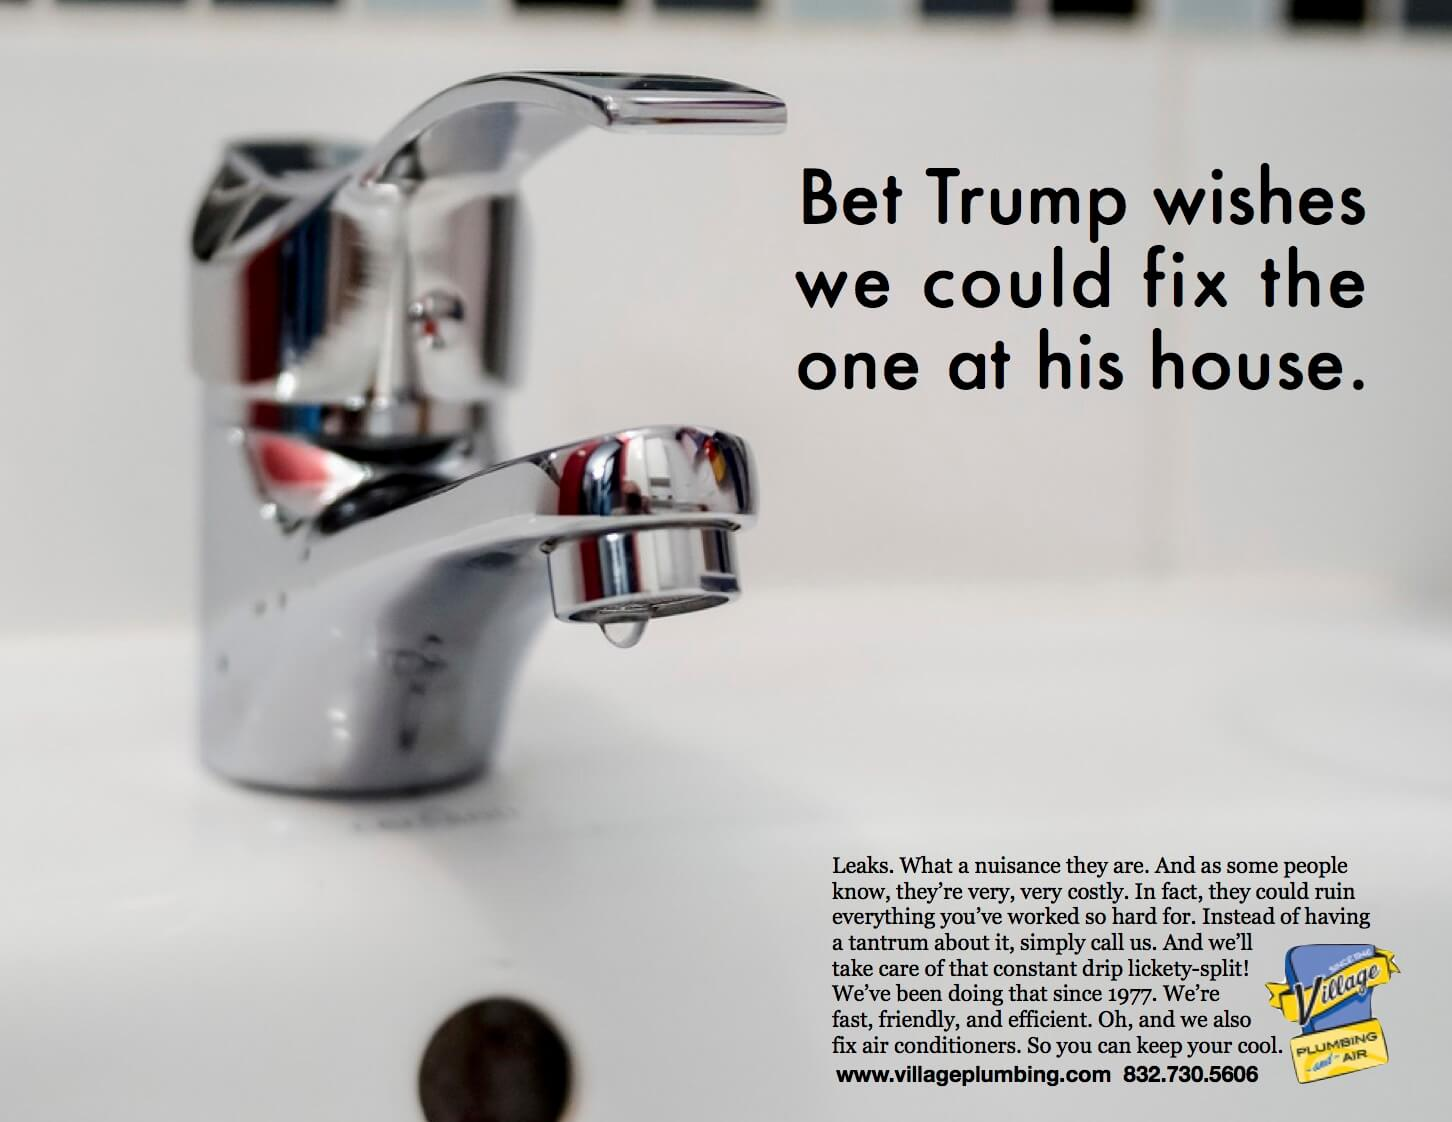 """Village Plumbing ad with a leaky faucet and the headline """"Bet Trump wishes we could fix the one at his house"""""""